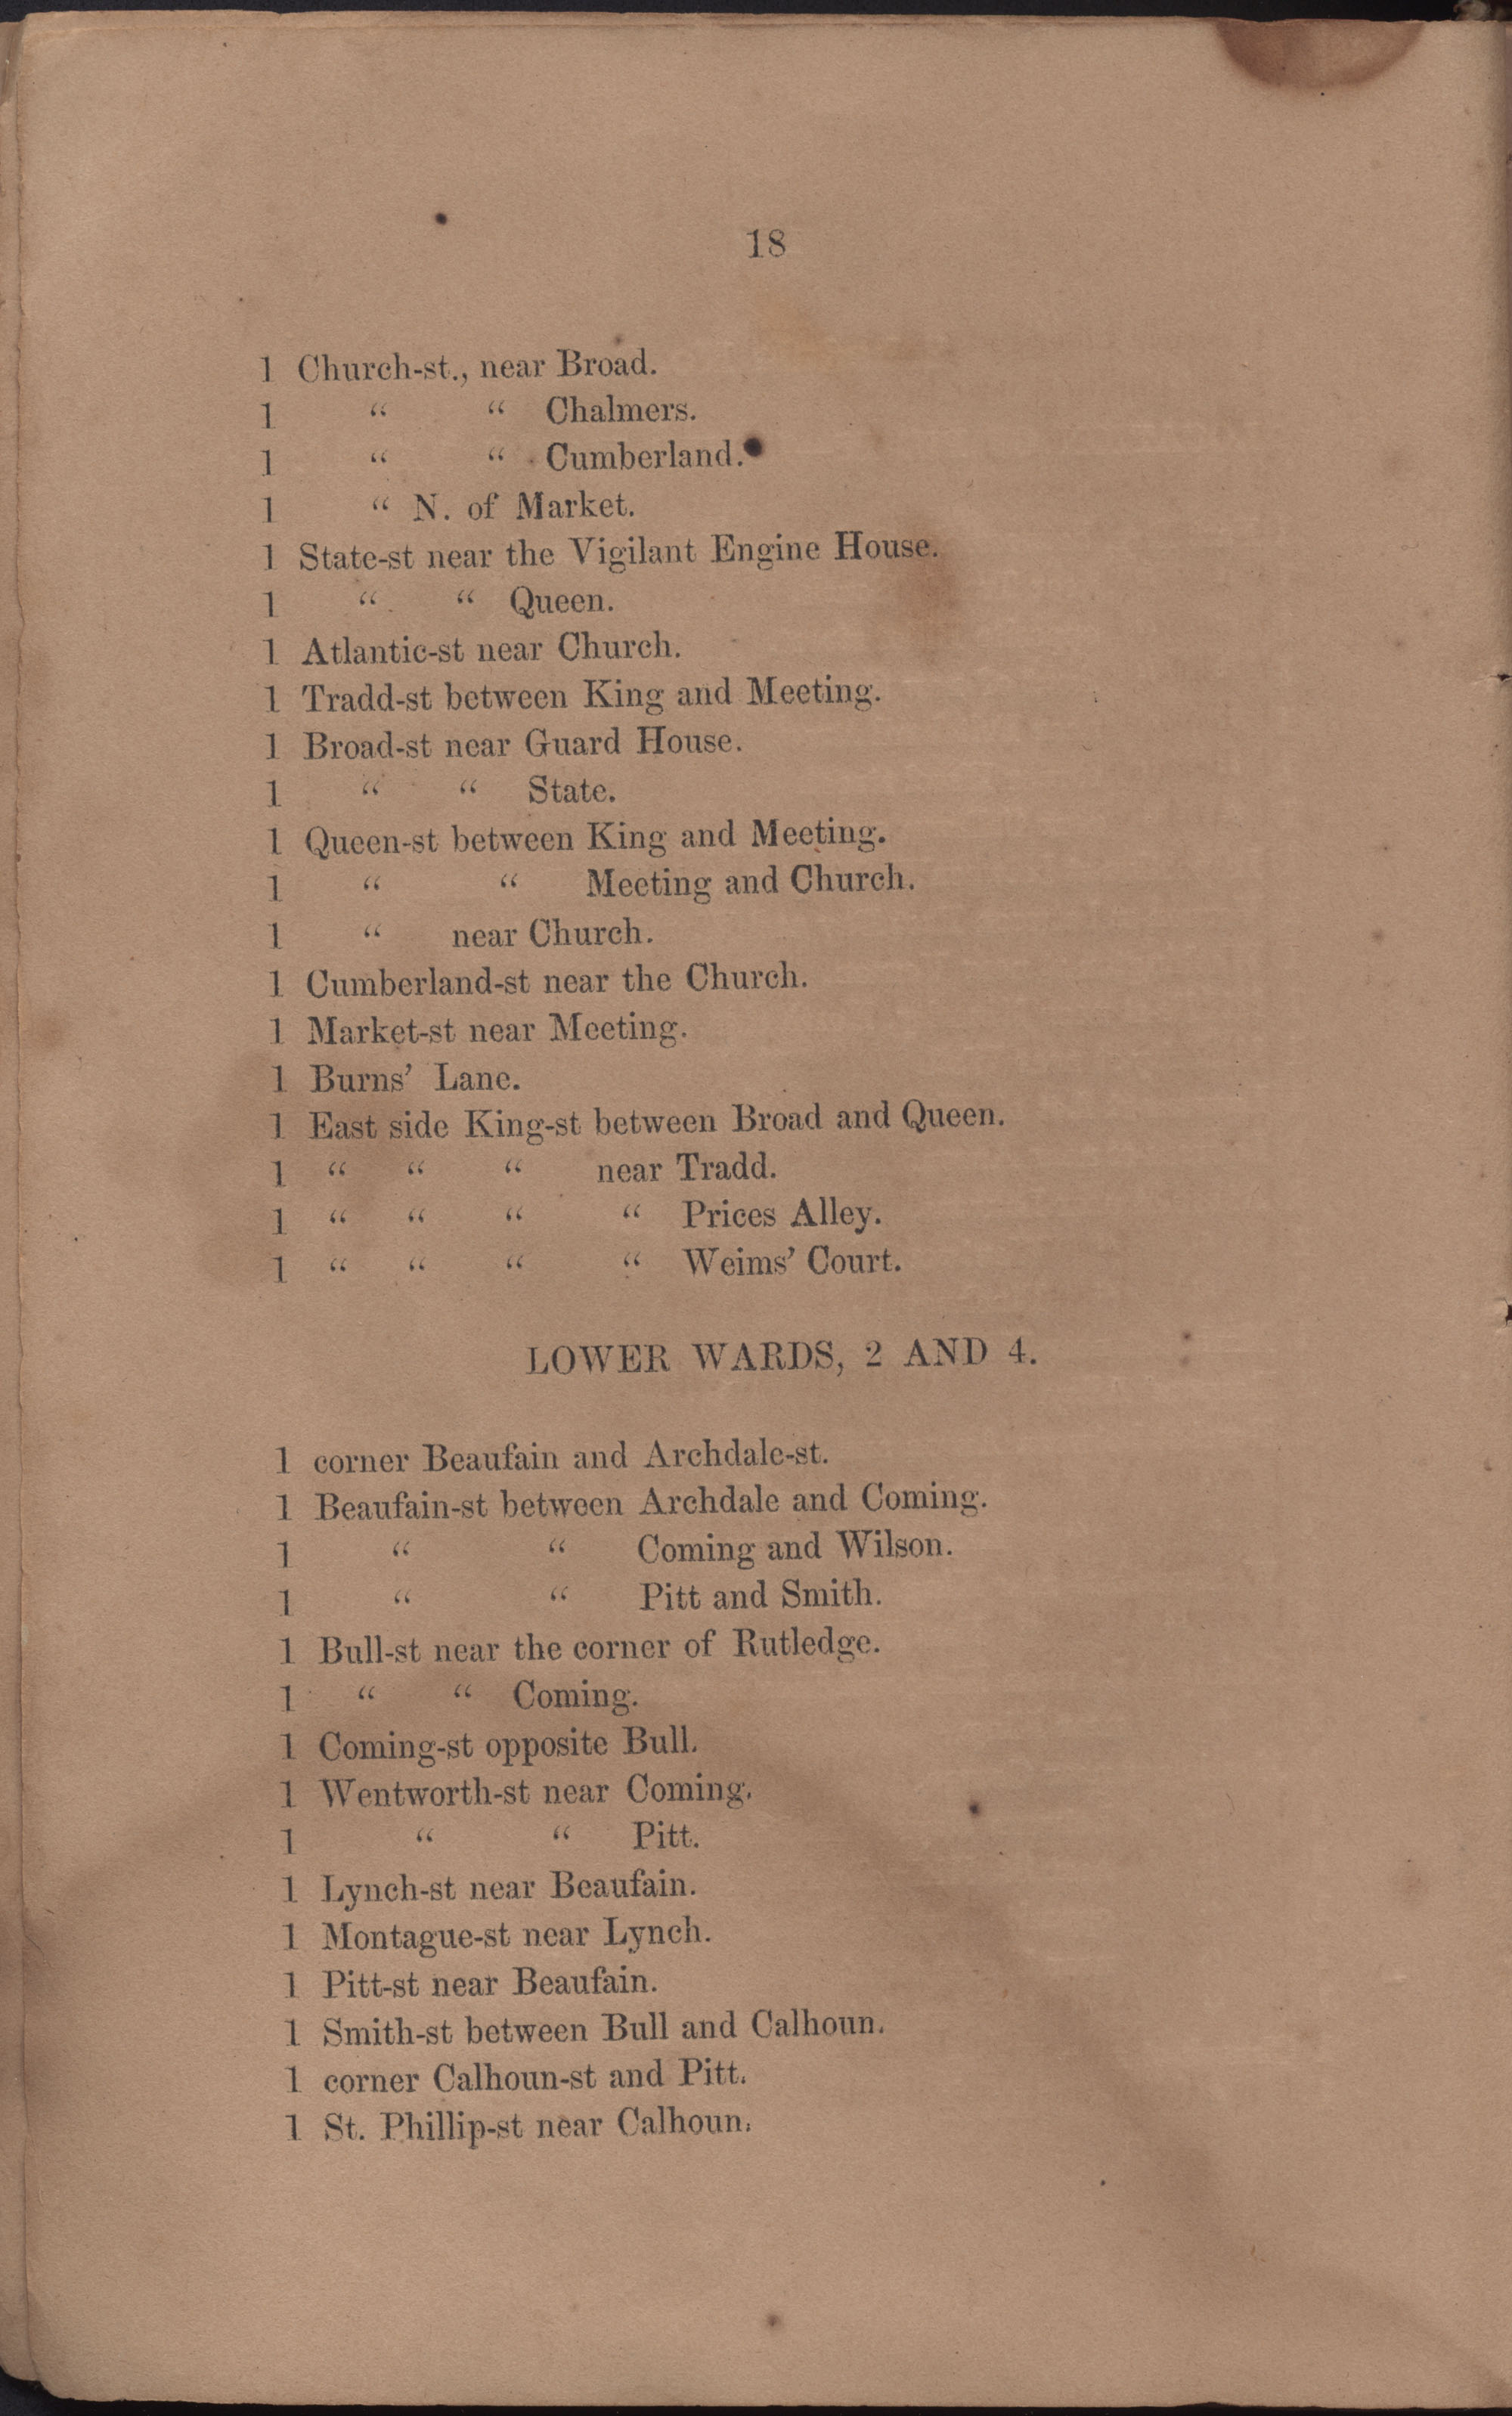 Annual Report of the Chief of the Fire Department of the City of Charleston, page 16